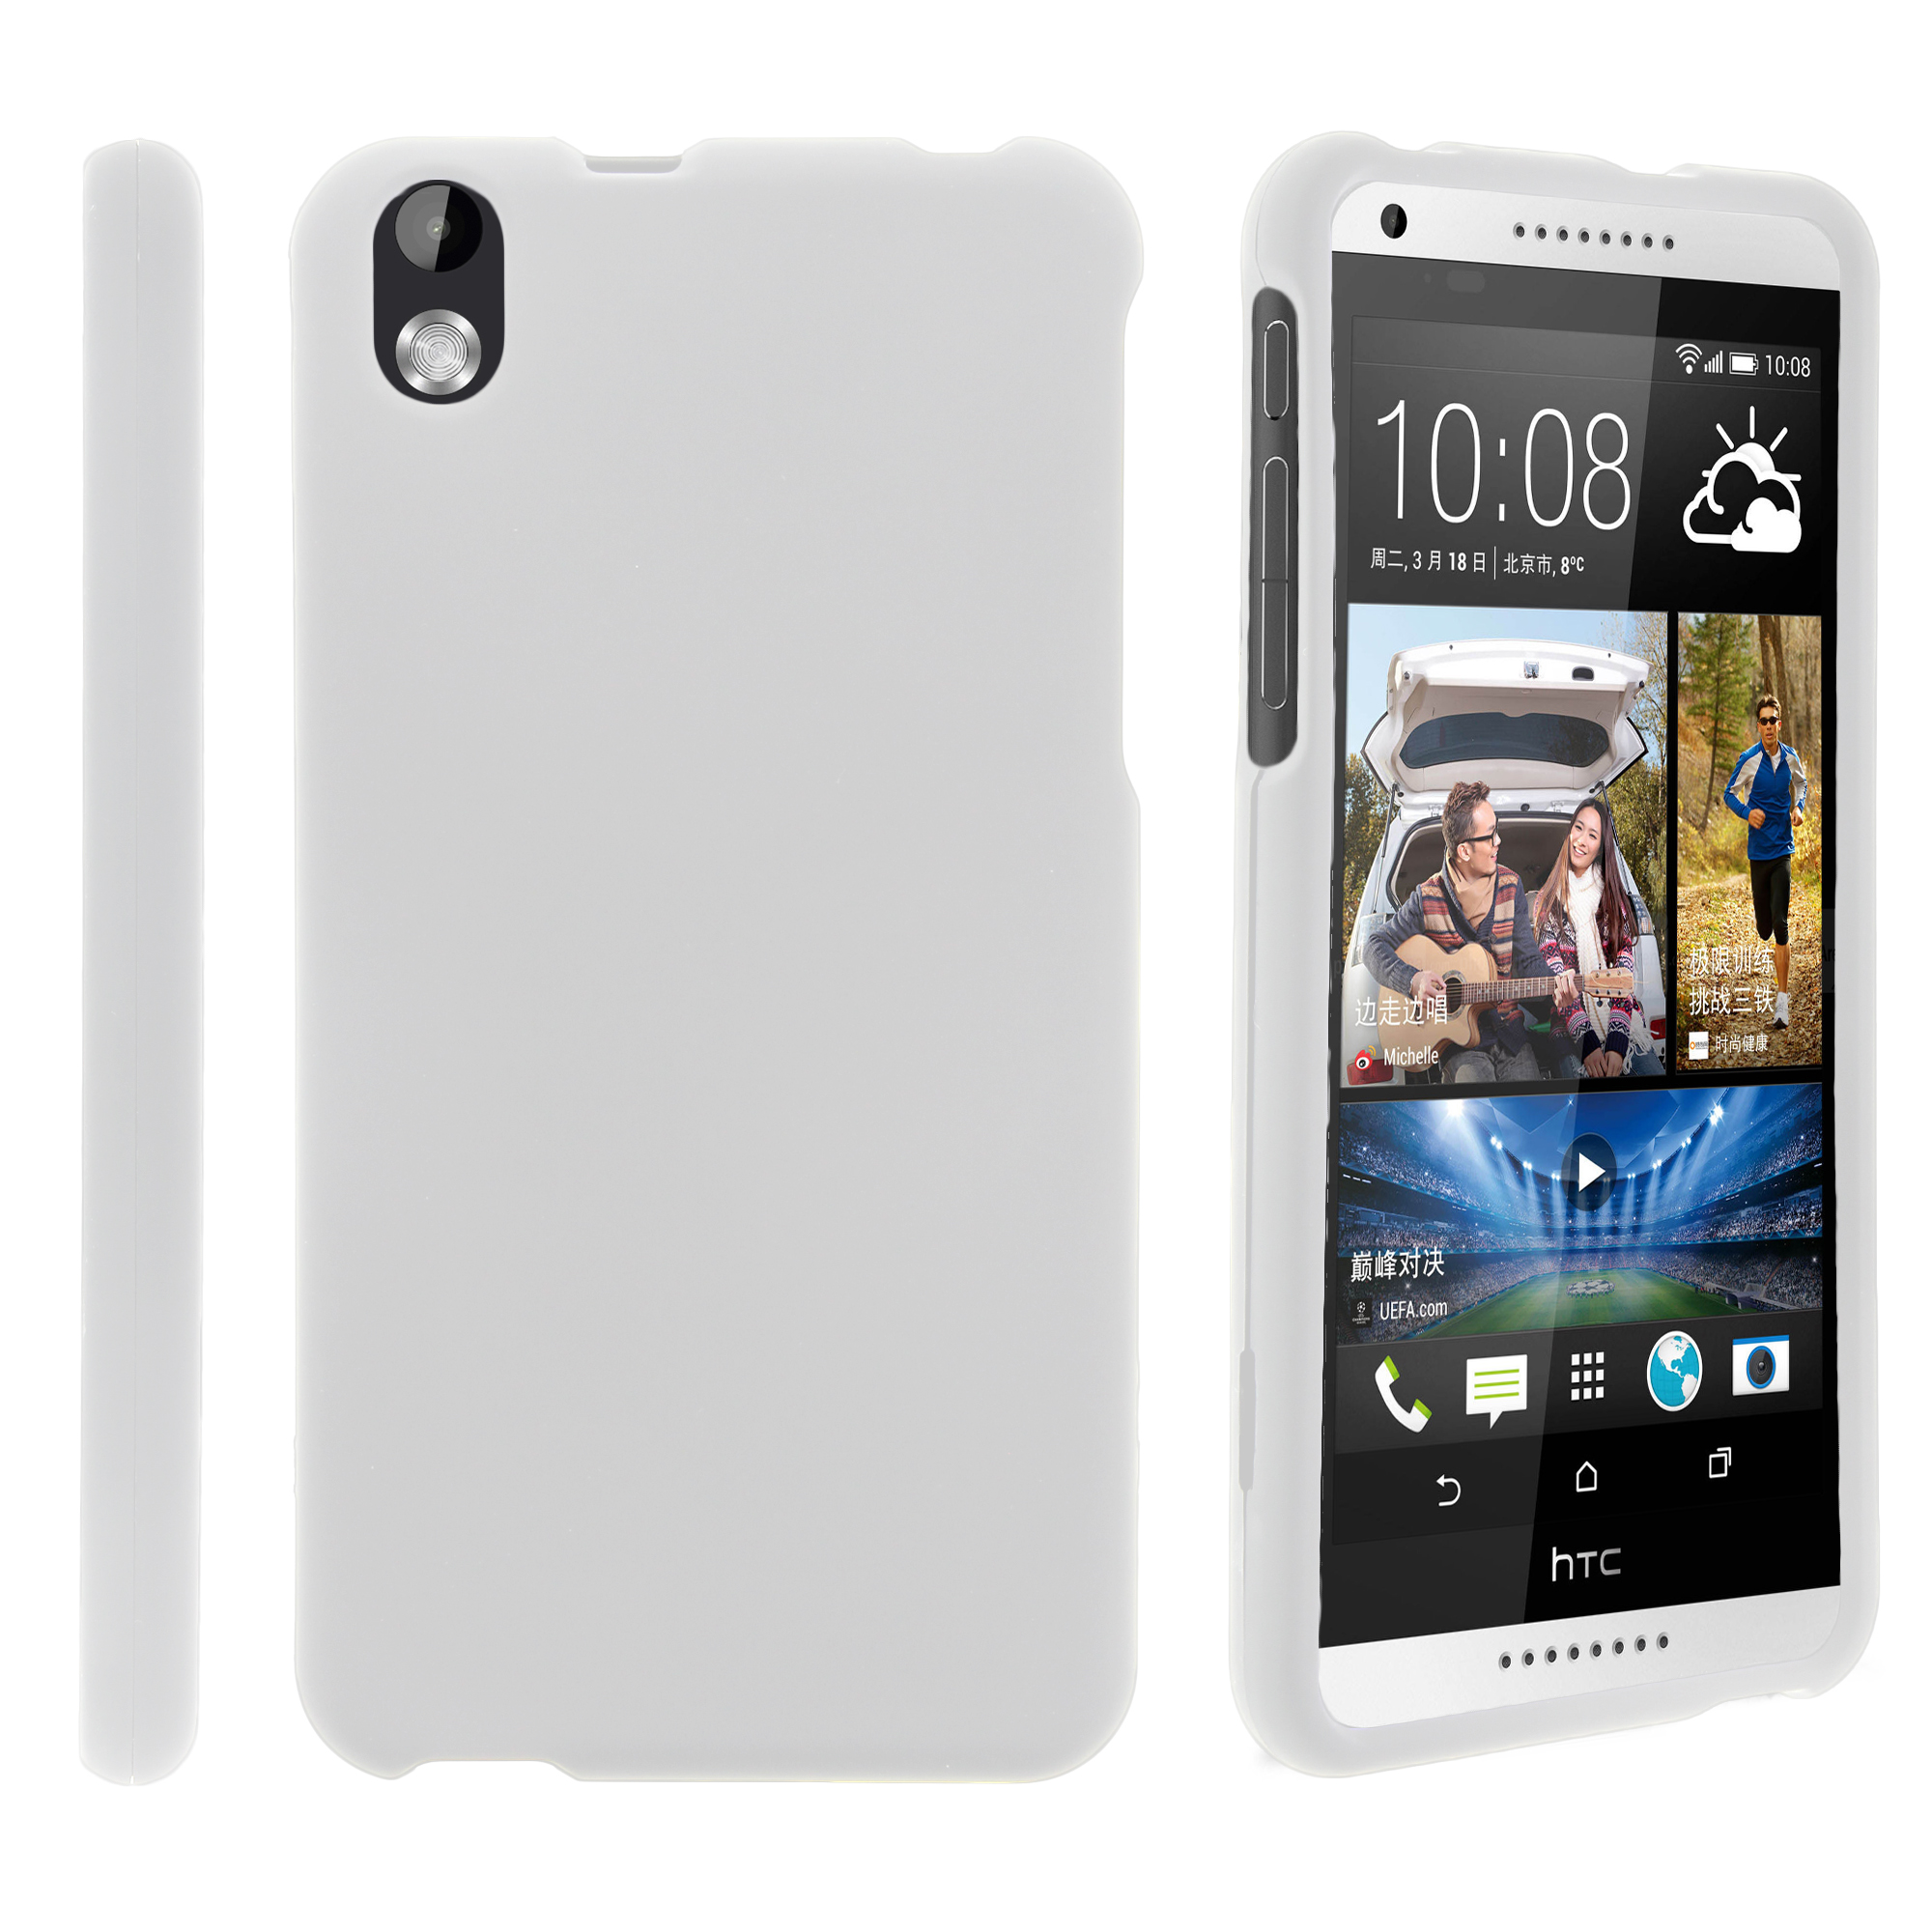 HTC Desire 816, [SNAP SHELL][White] 2 Piece Snap On Rubberized Hard White Plastic Cell Phone Case with Exclusive Art -  White